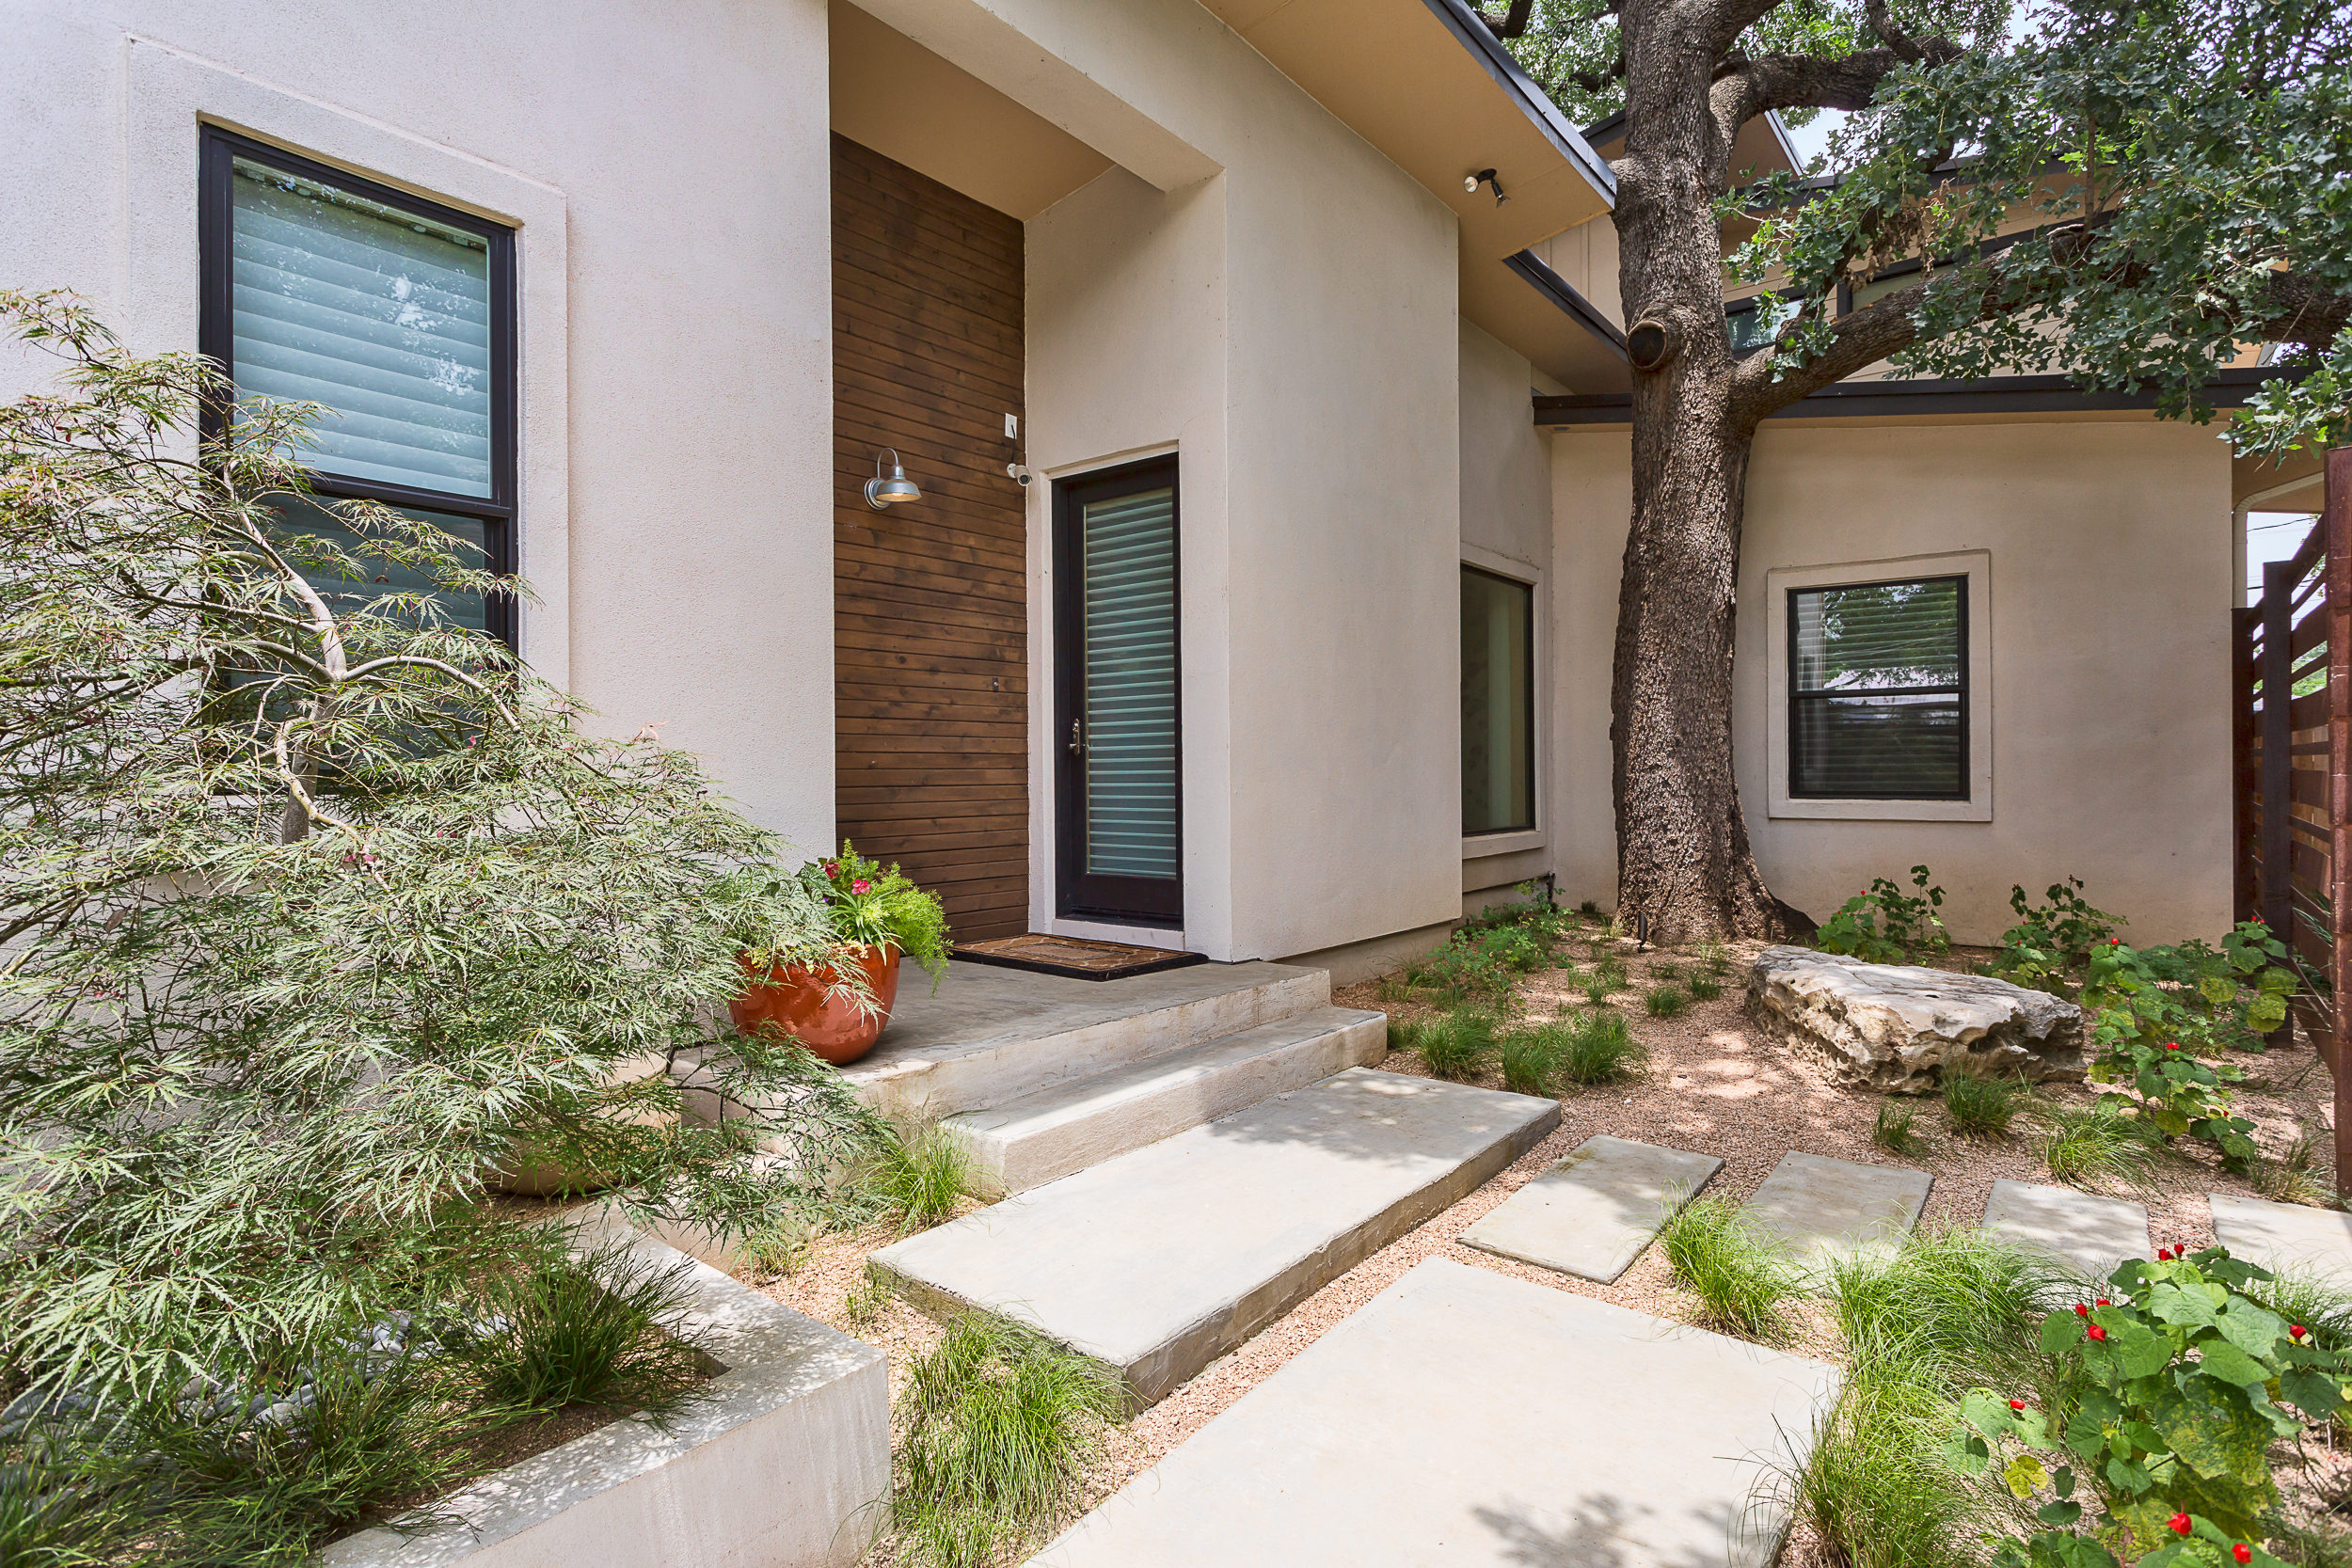 Single Family Home for Sale at Stunning Contemporary Smart Home 304 E 35th St Austin, Texas 78705 United States